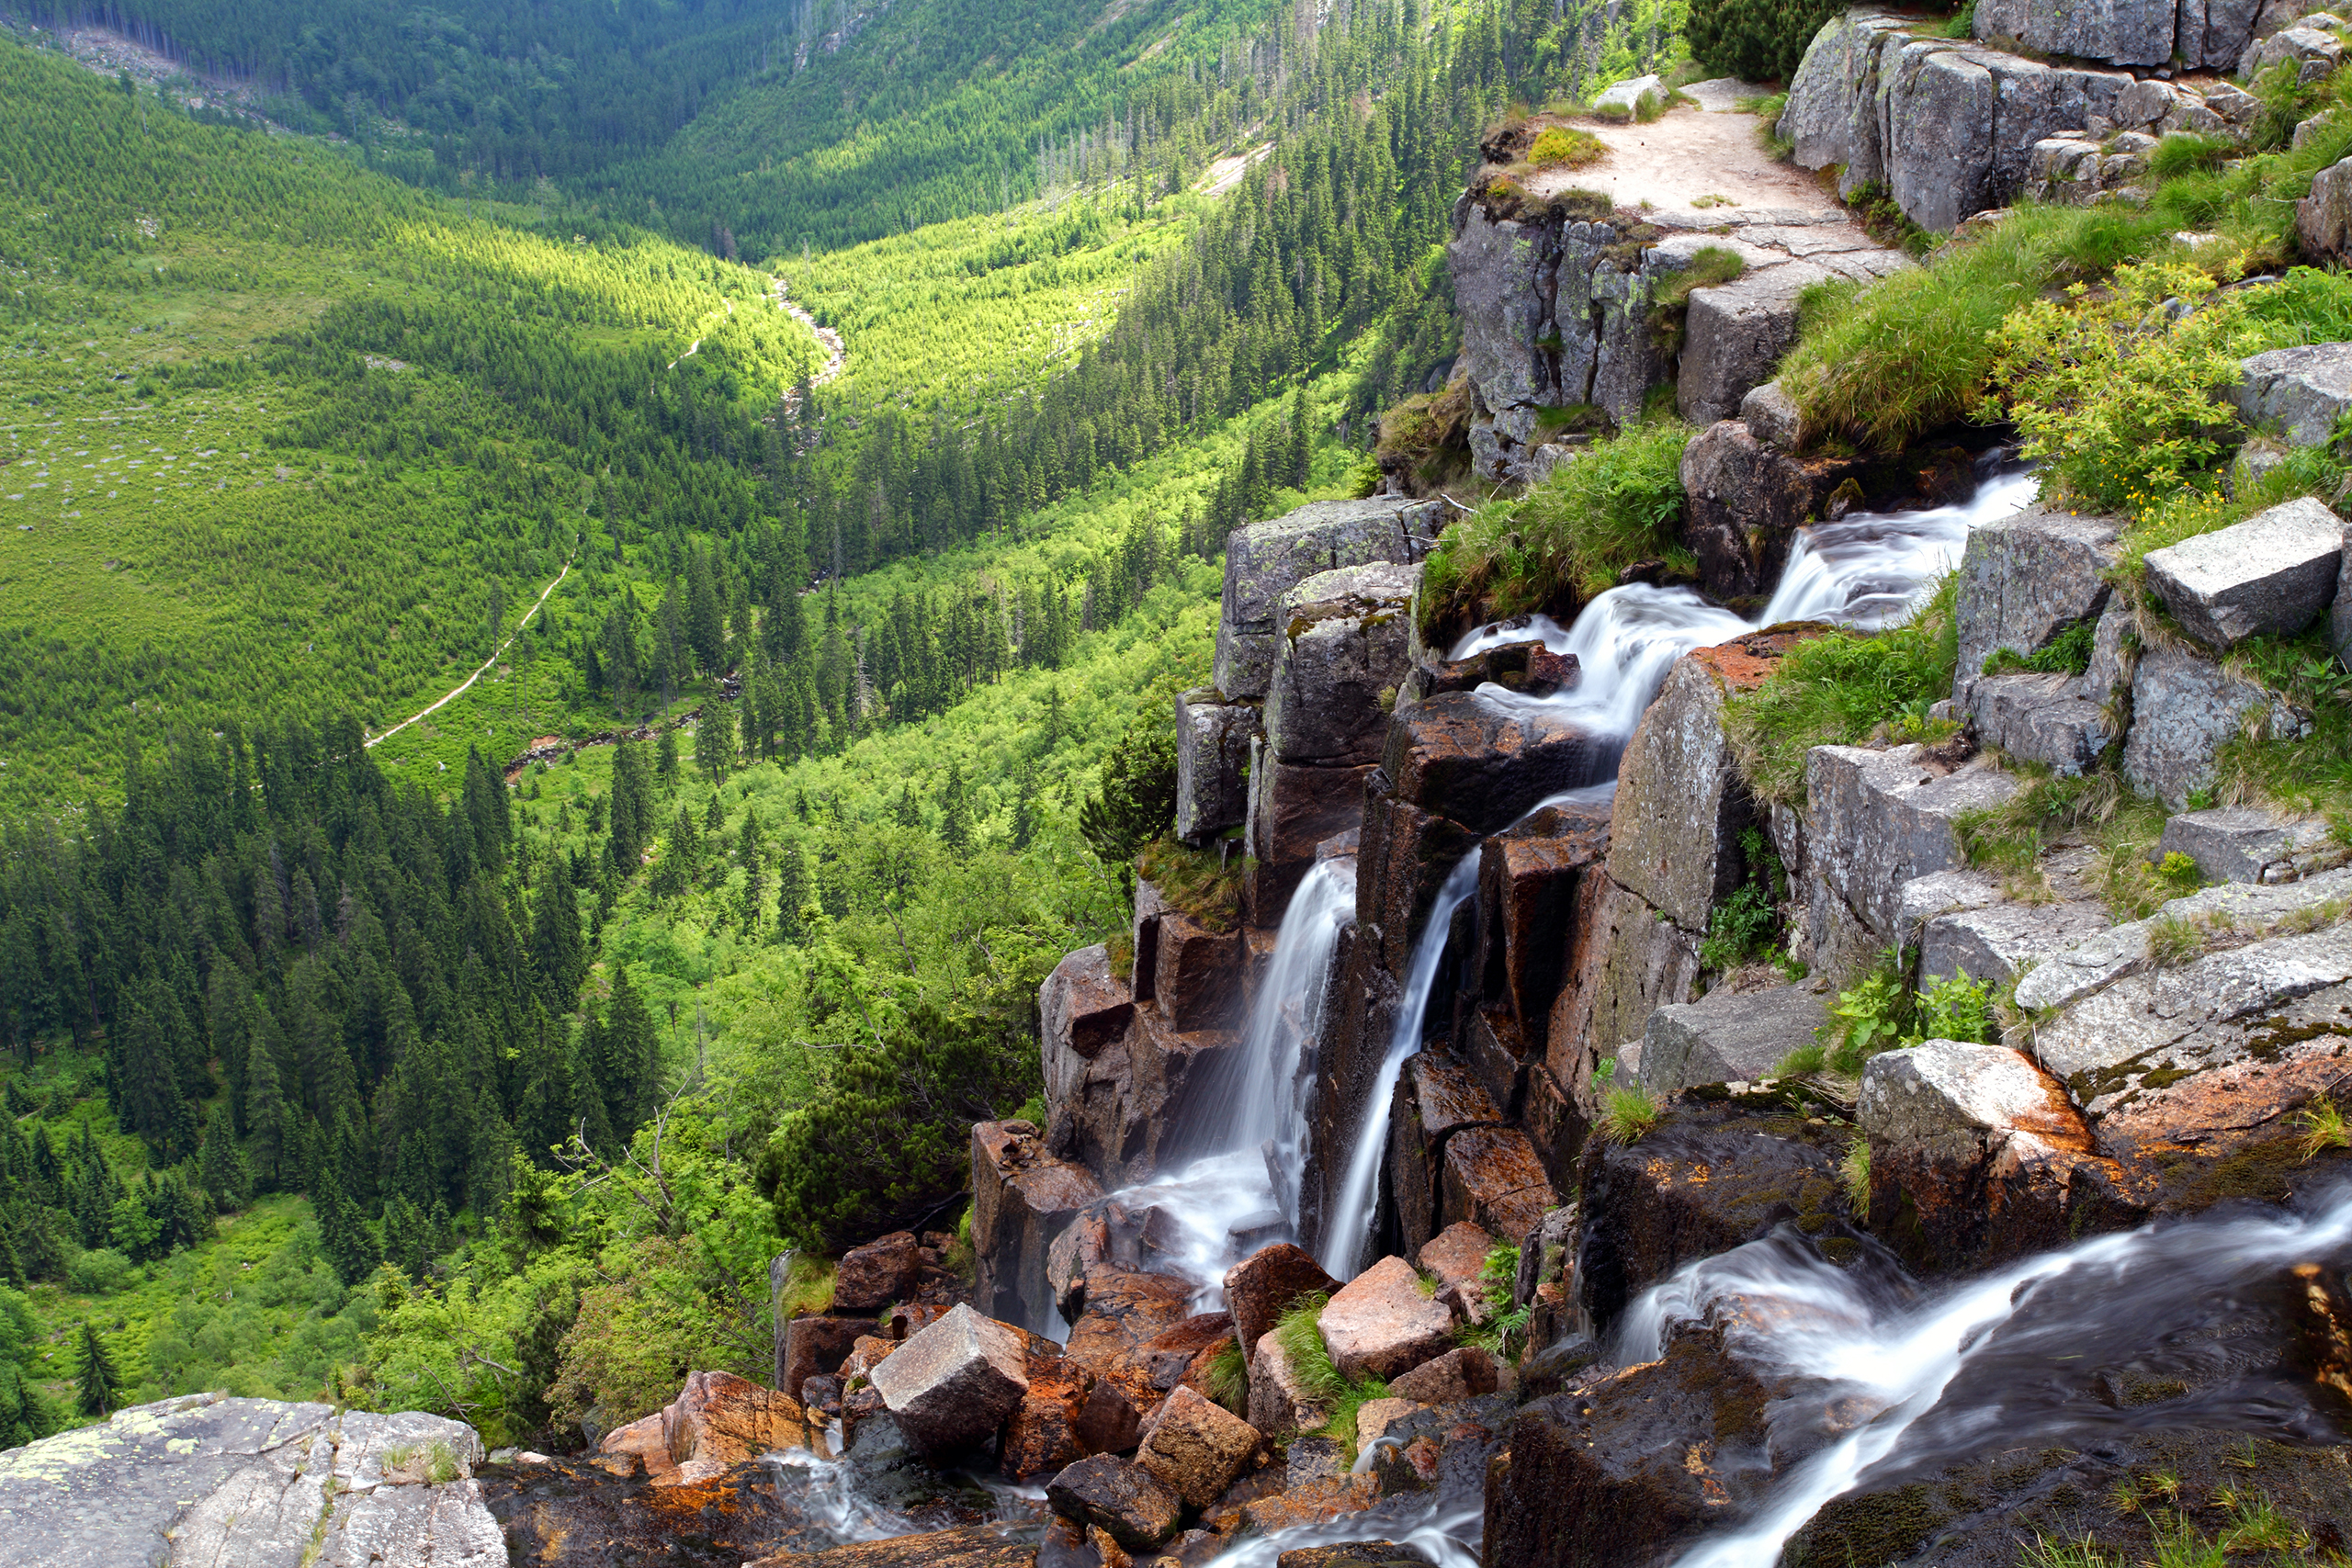 Krkonoše National Park, Czech Republic. This park covers 164 square miles of mountains between the Czech Republic and Poland. It contains the highest mountains north of the Alps in Europe.